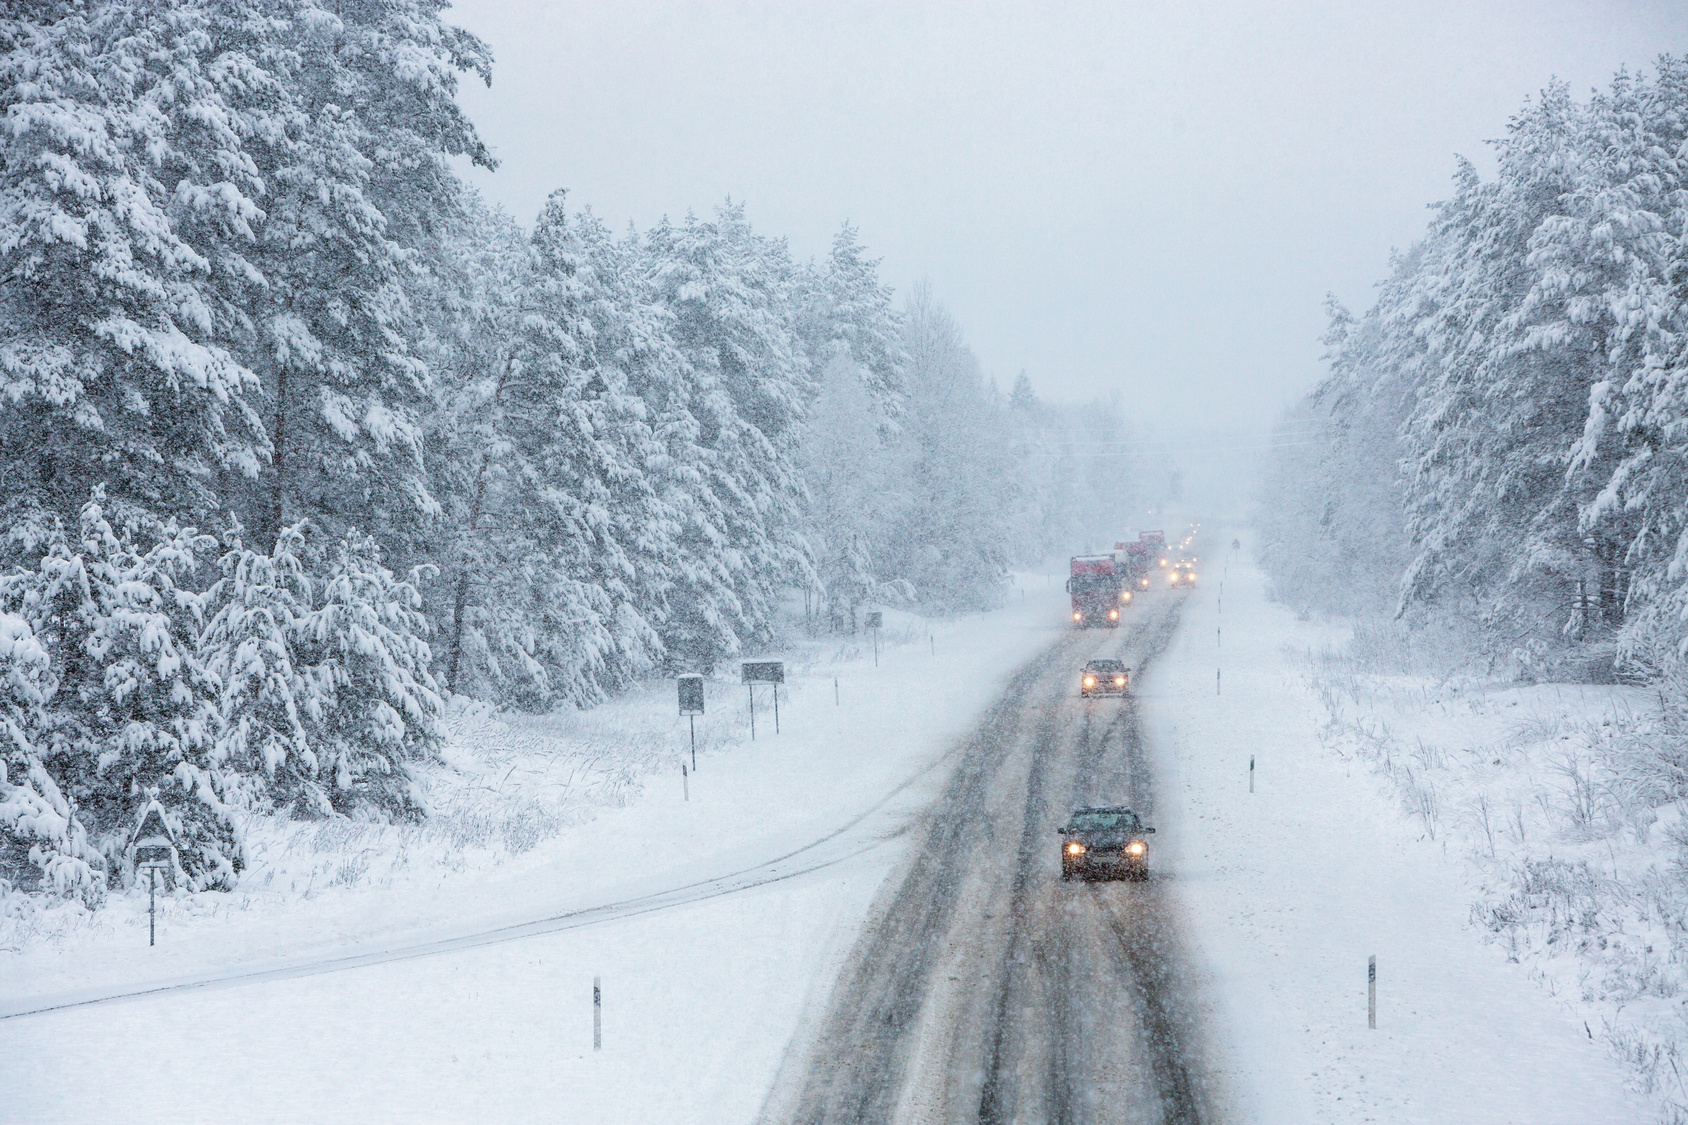 Several cars on a winter road